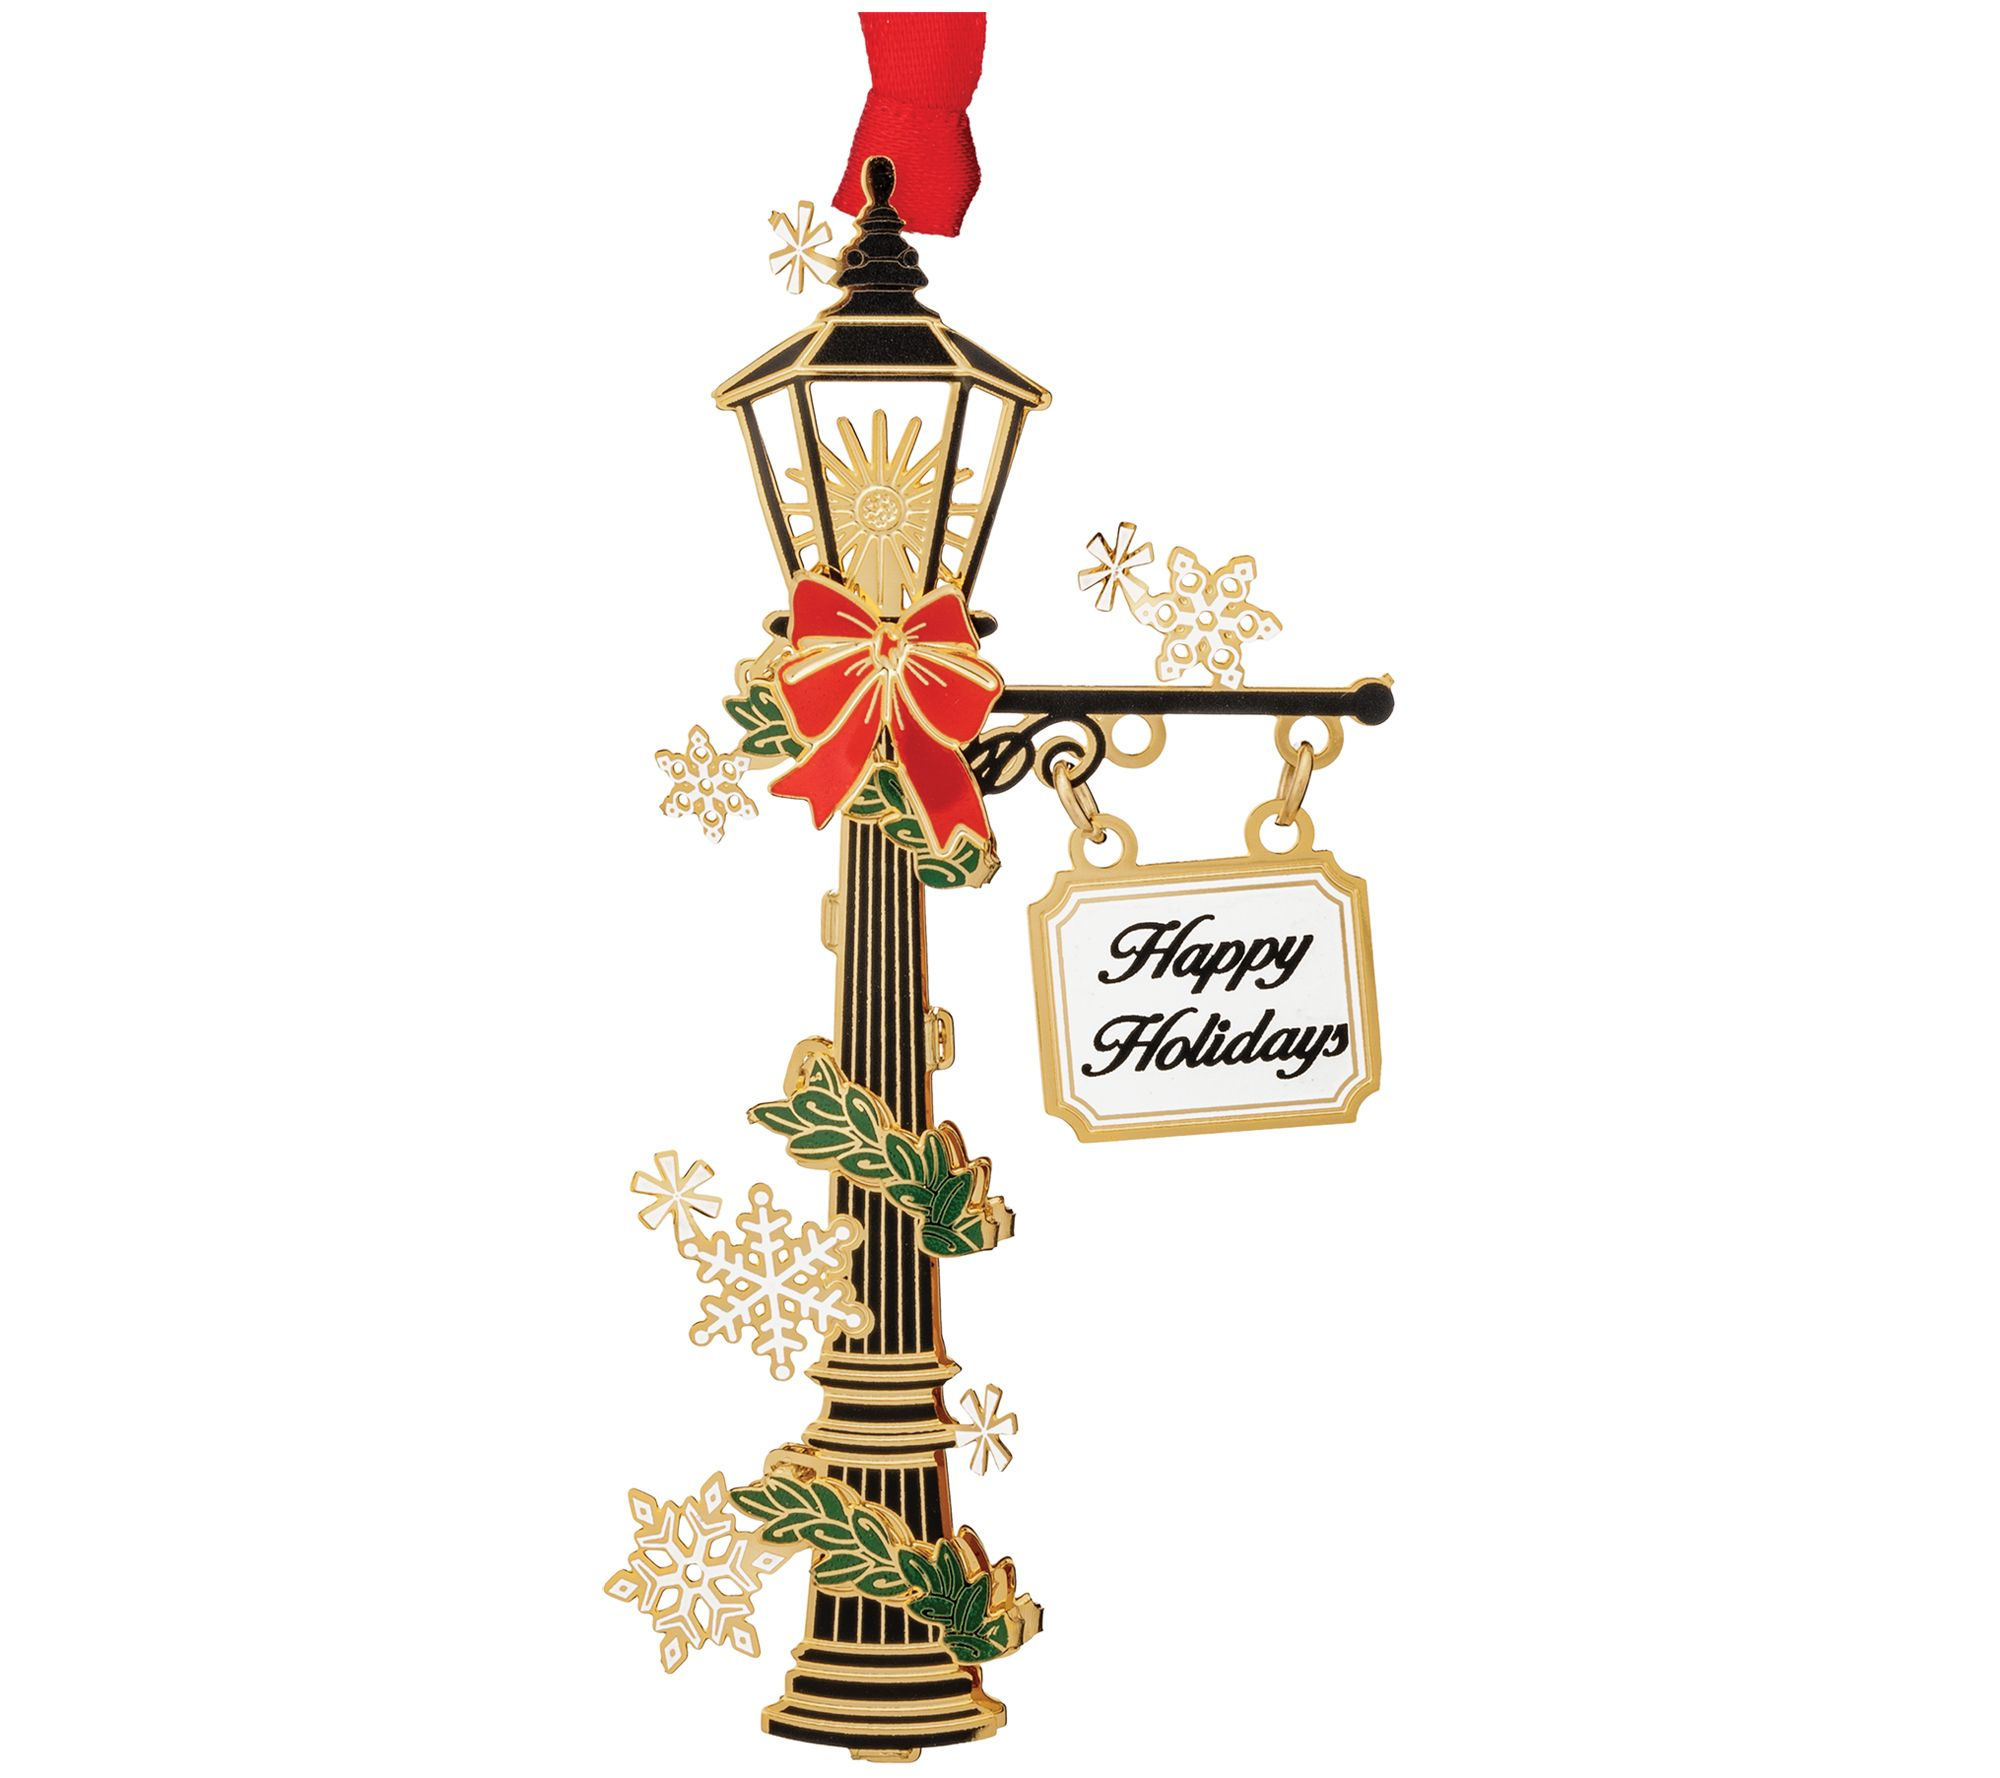 Holiday Lamp Post Ornament By Beacon Design Qvc Com